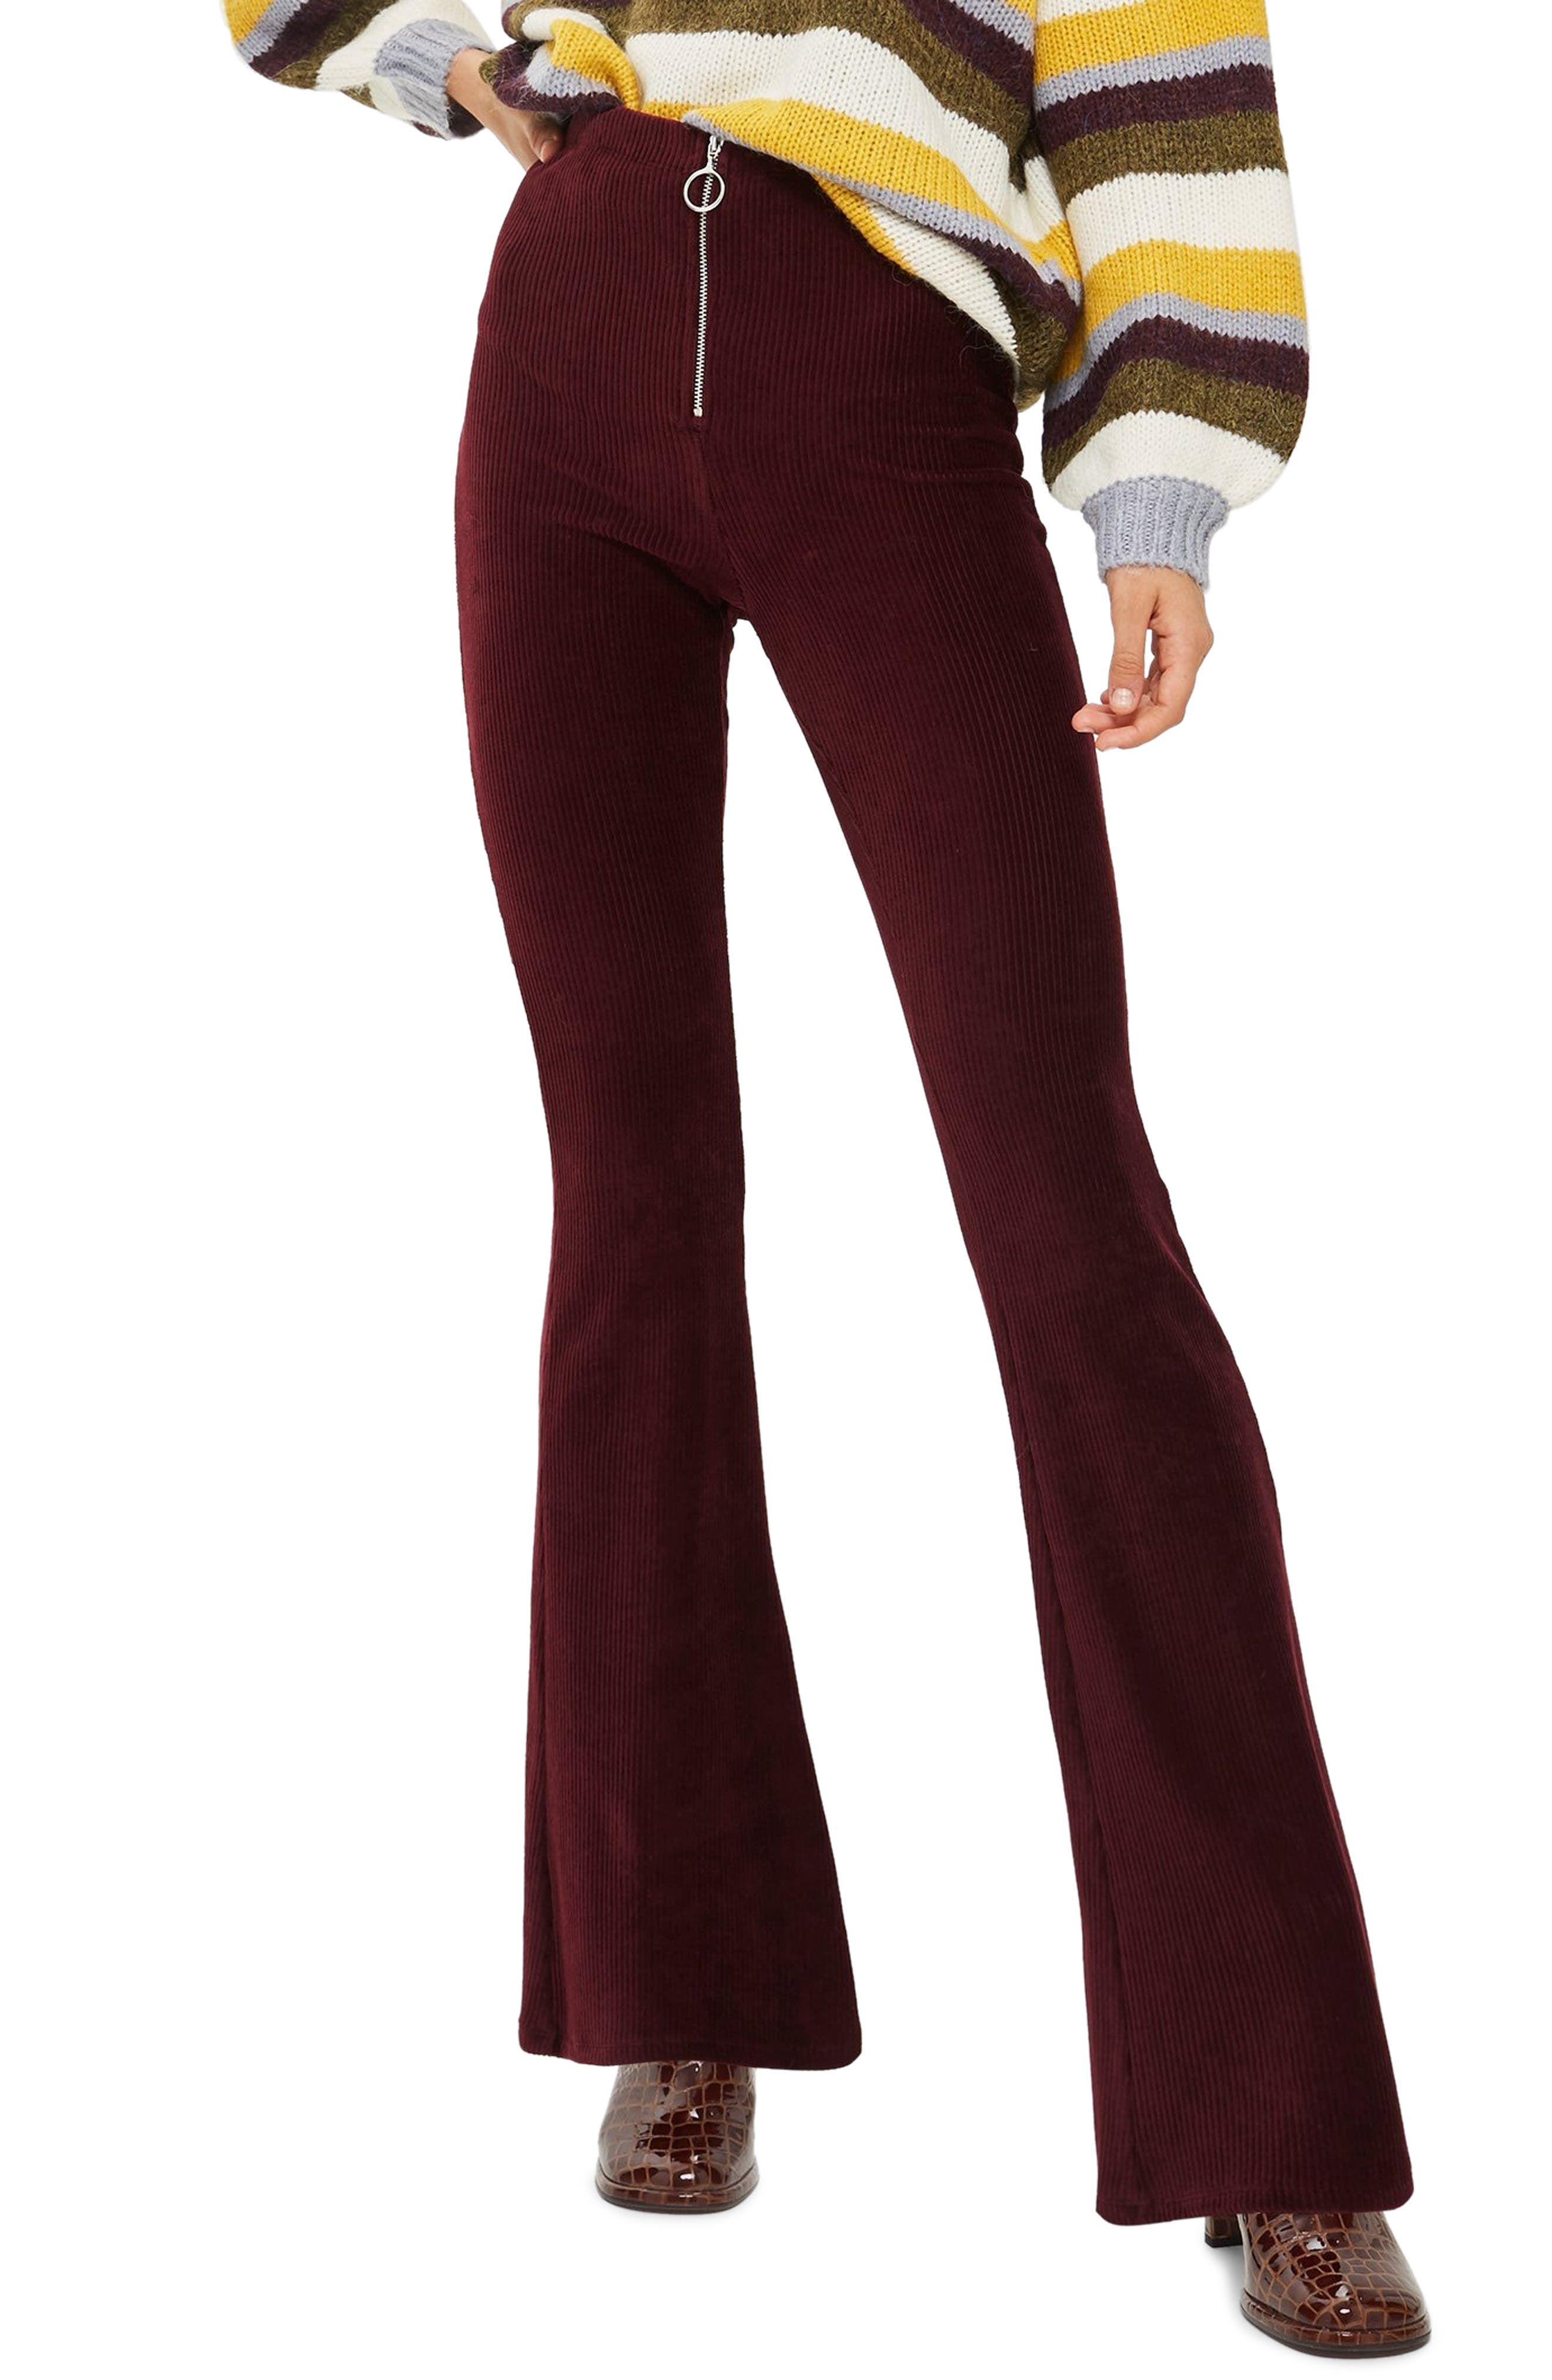 Topshop Zip Flare Corduroy Pants, US (fits like 10-12) - Burgundy